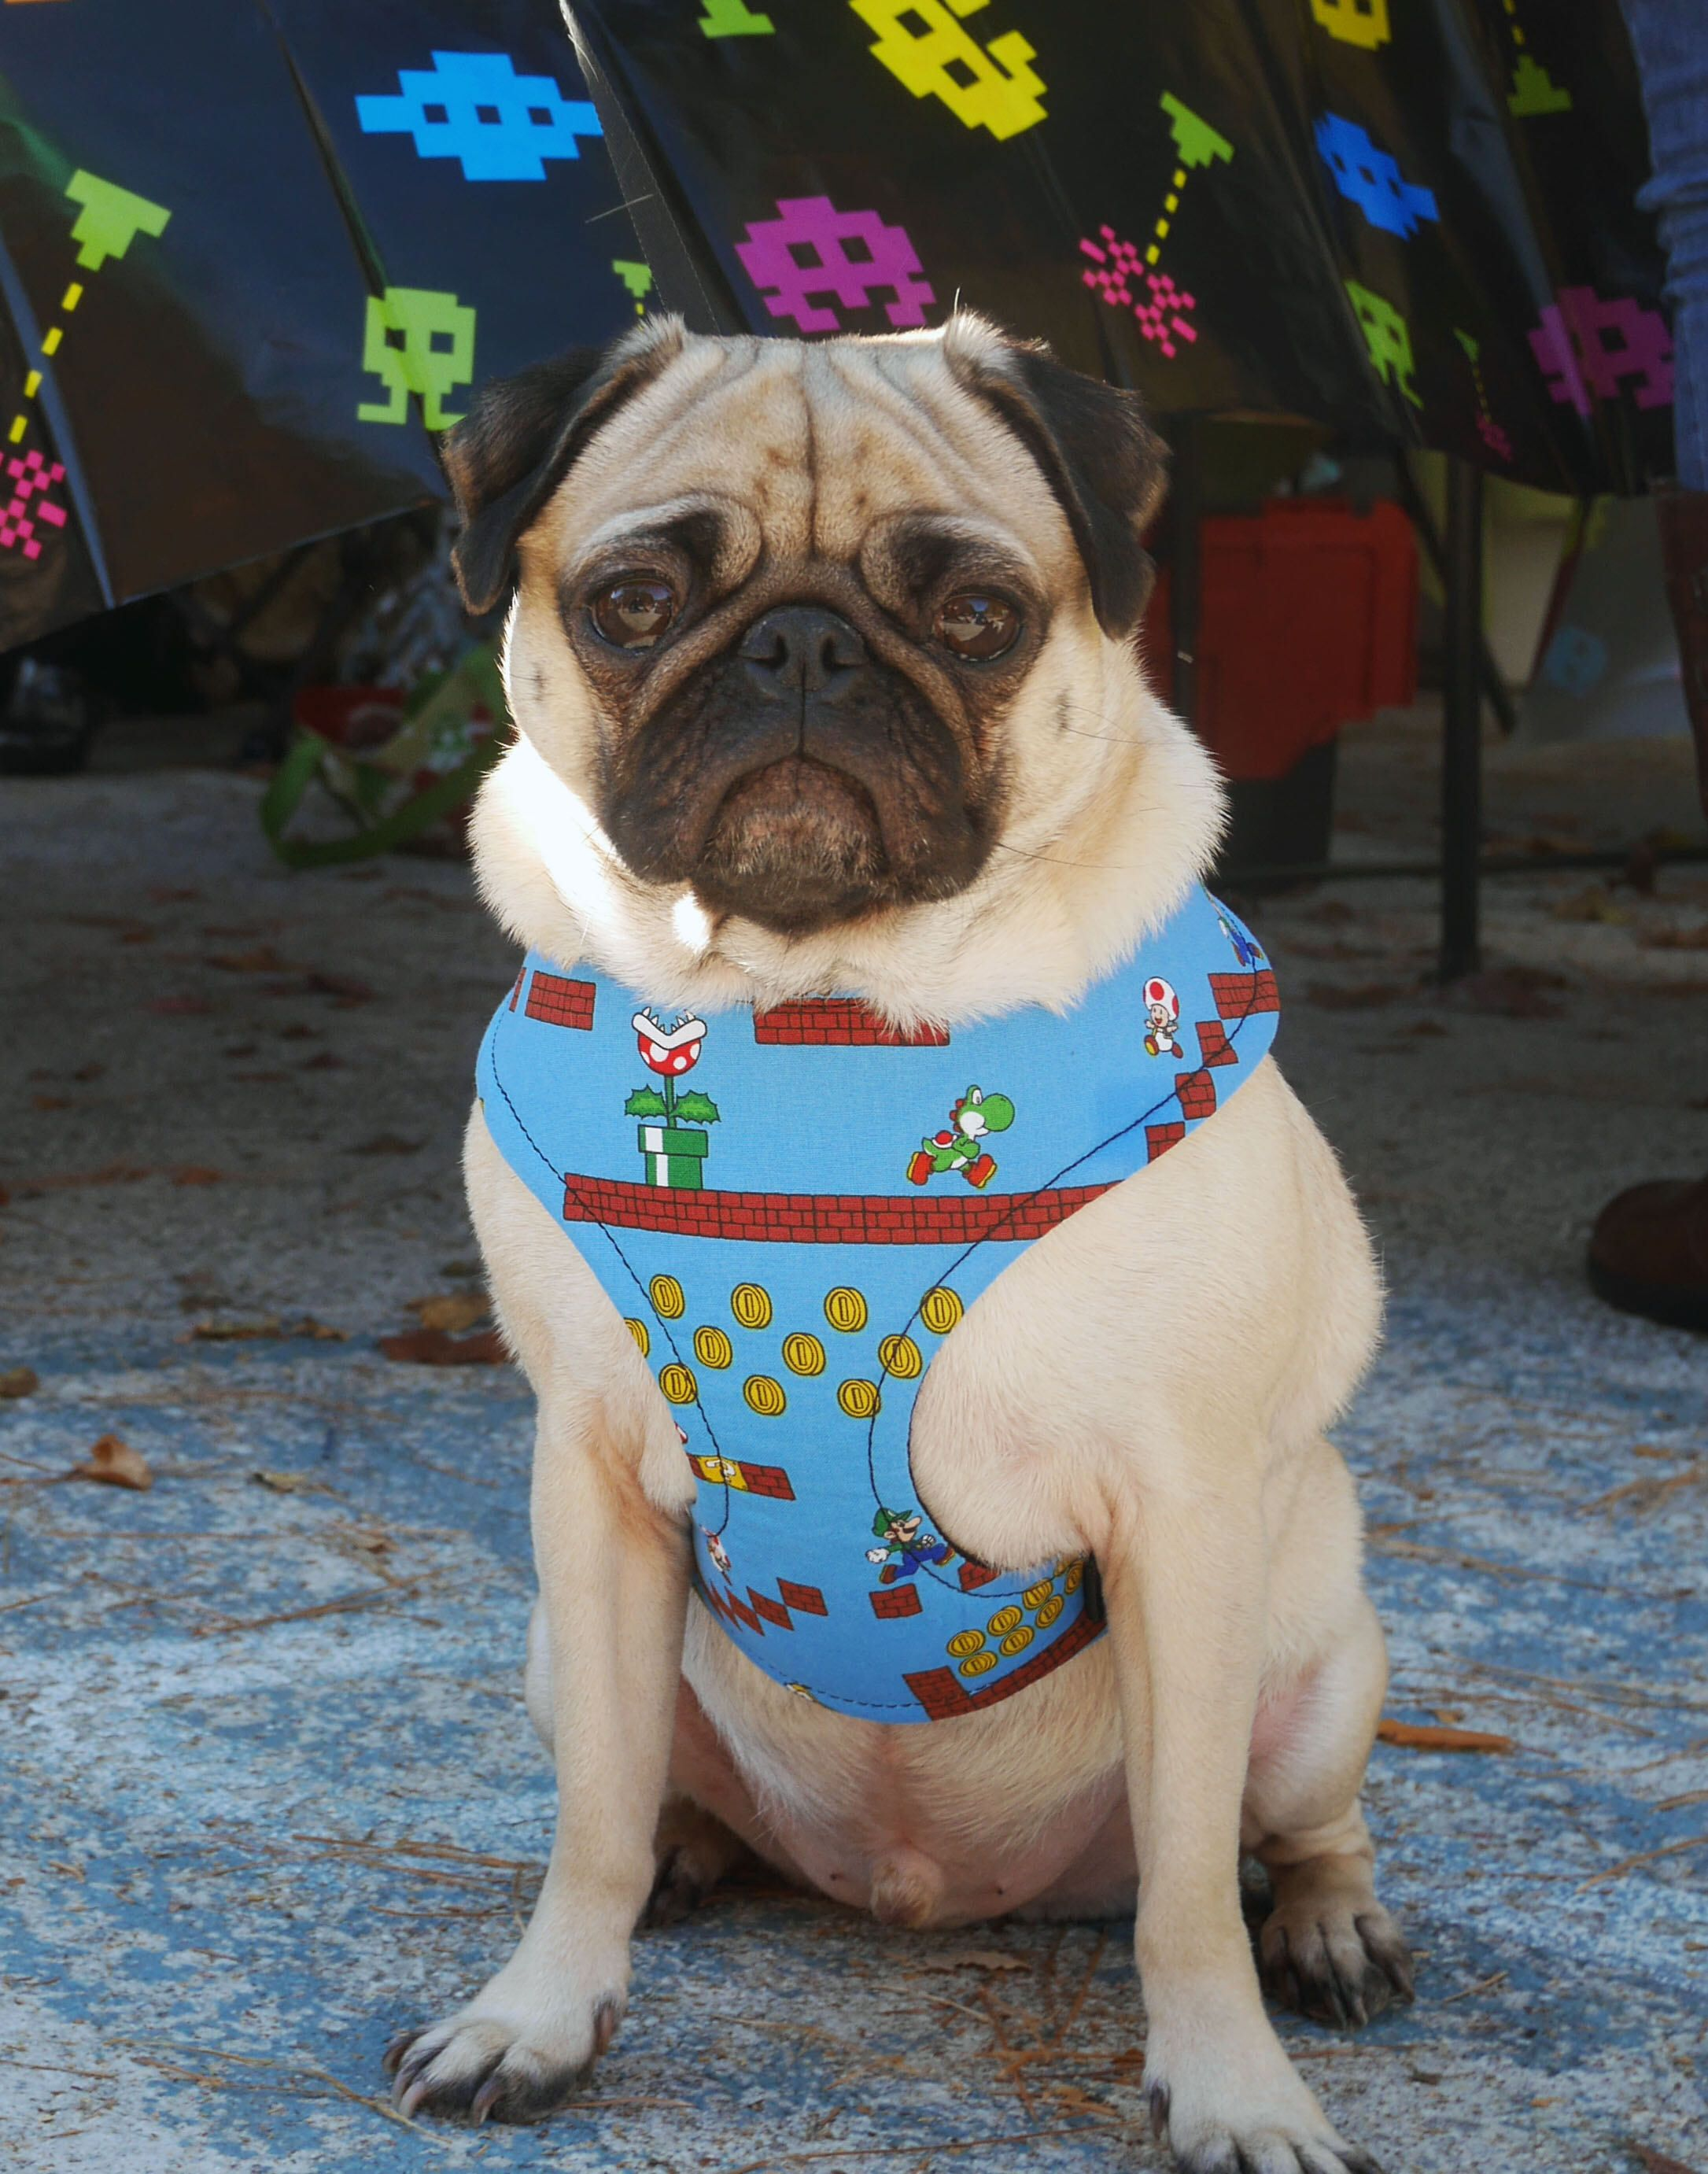 Retro Gamer Dog Harness A Blue 8 Bit Geek Chic Throwback To The